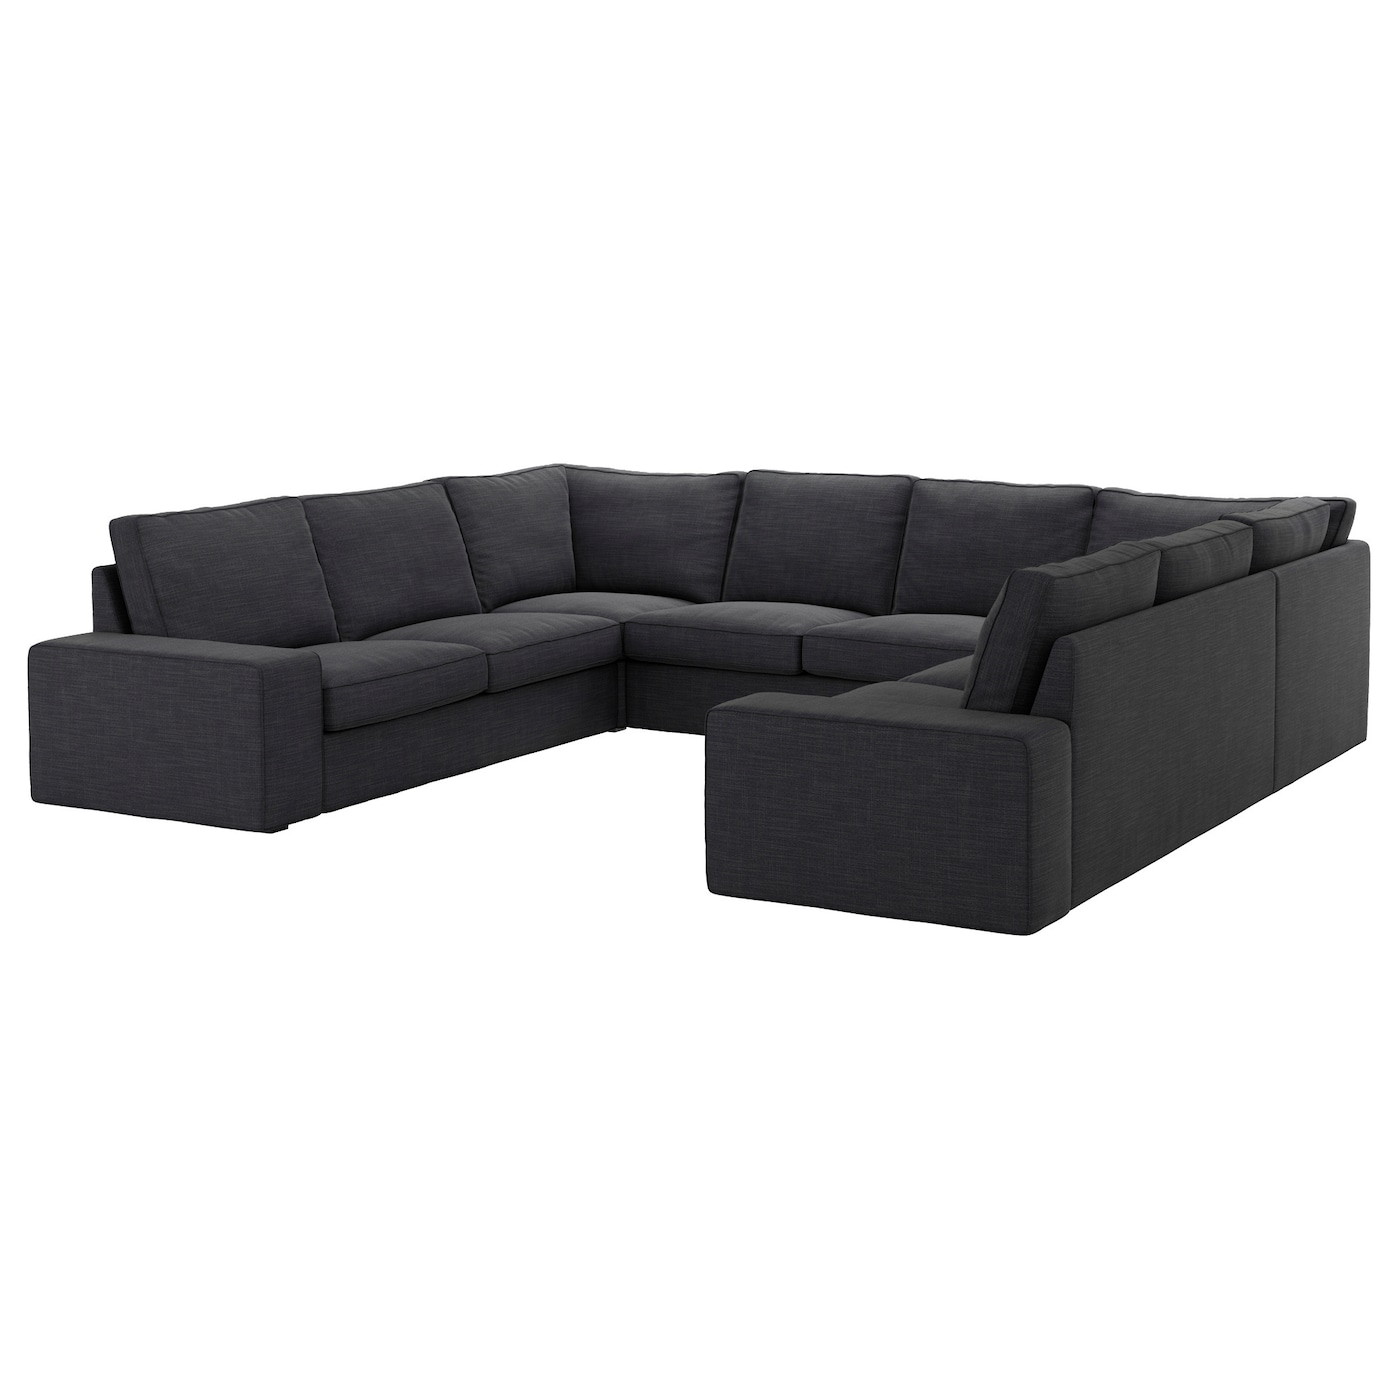 kivik sofa u shaped 8 seater hillared anthracite ikea. Black Bedroom Furniture Sets. Home Design Ideas